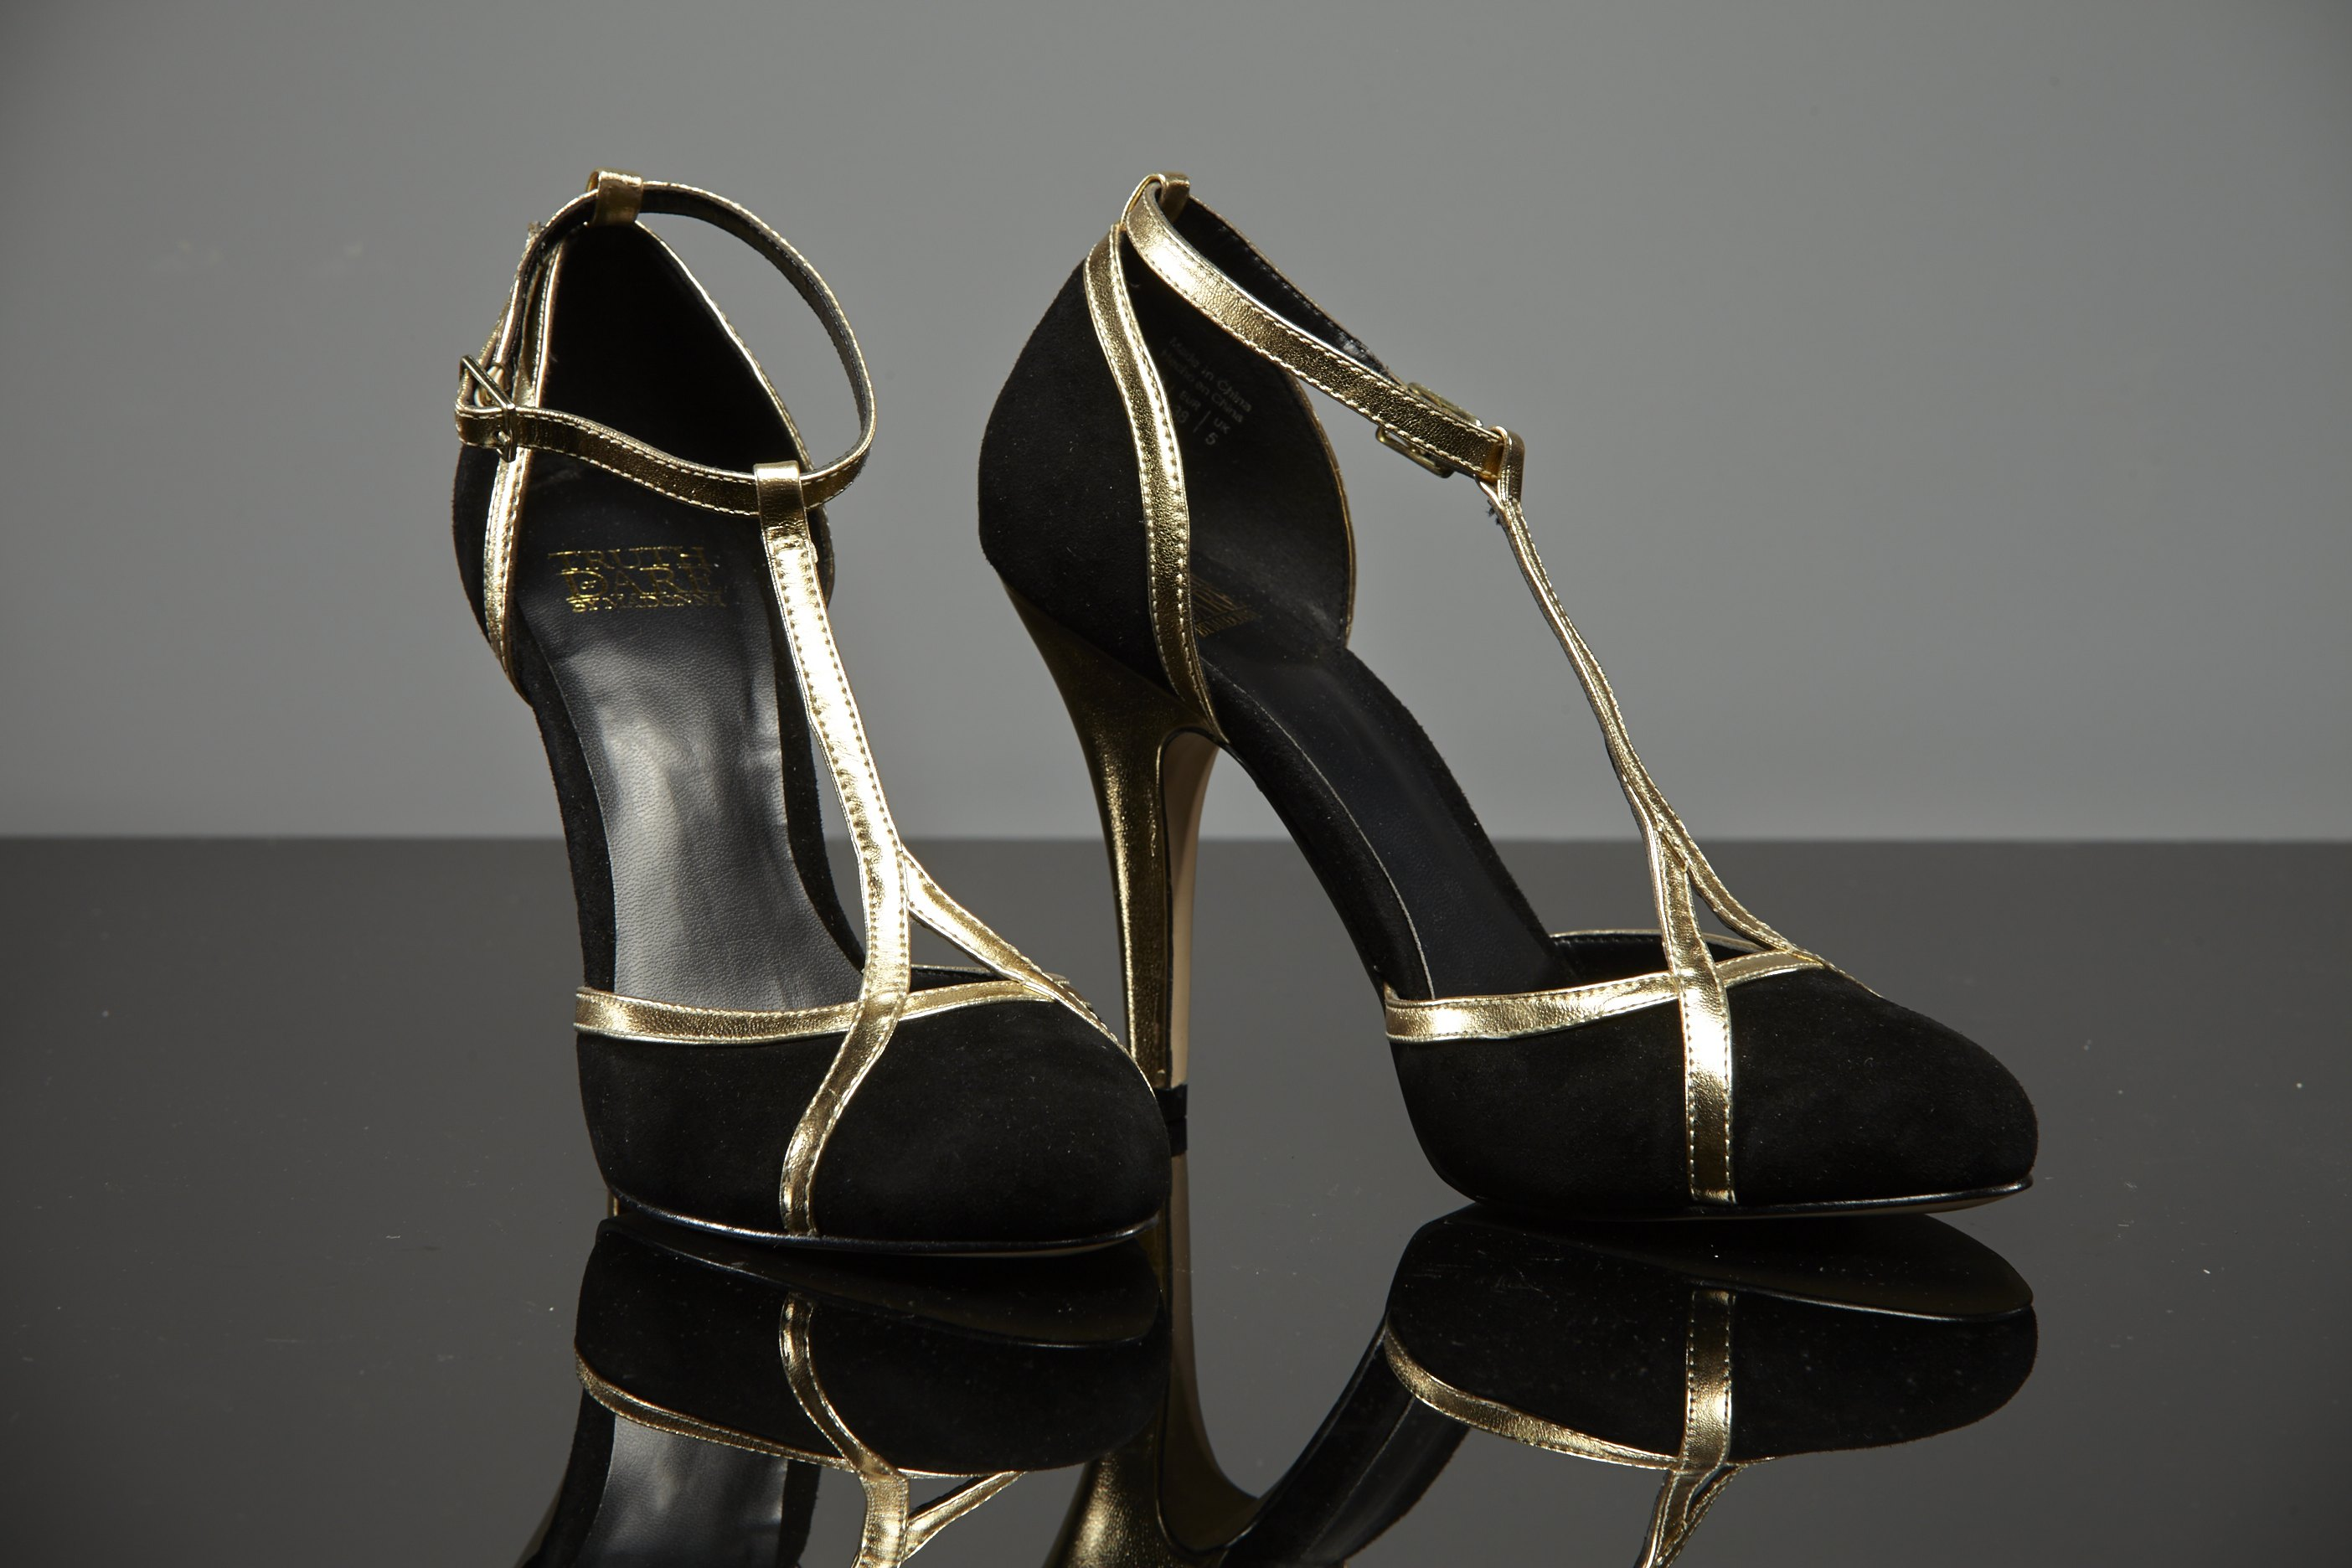 Madonna's fabulous black and gold suede heels are a US size 7.5.